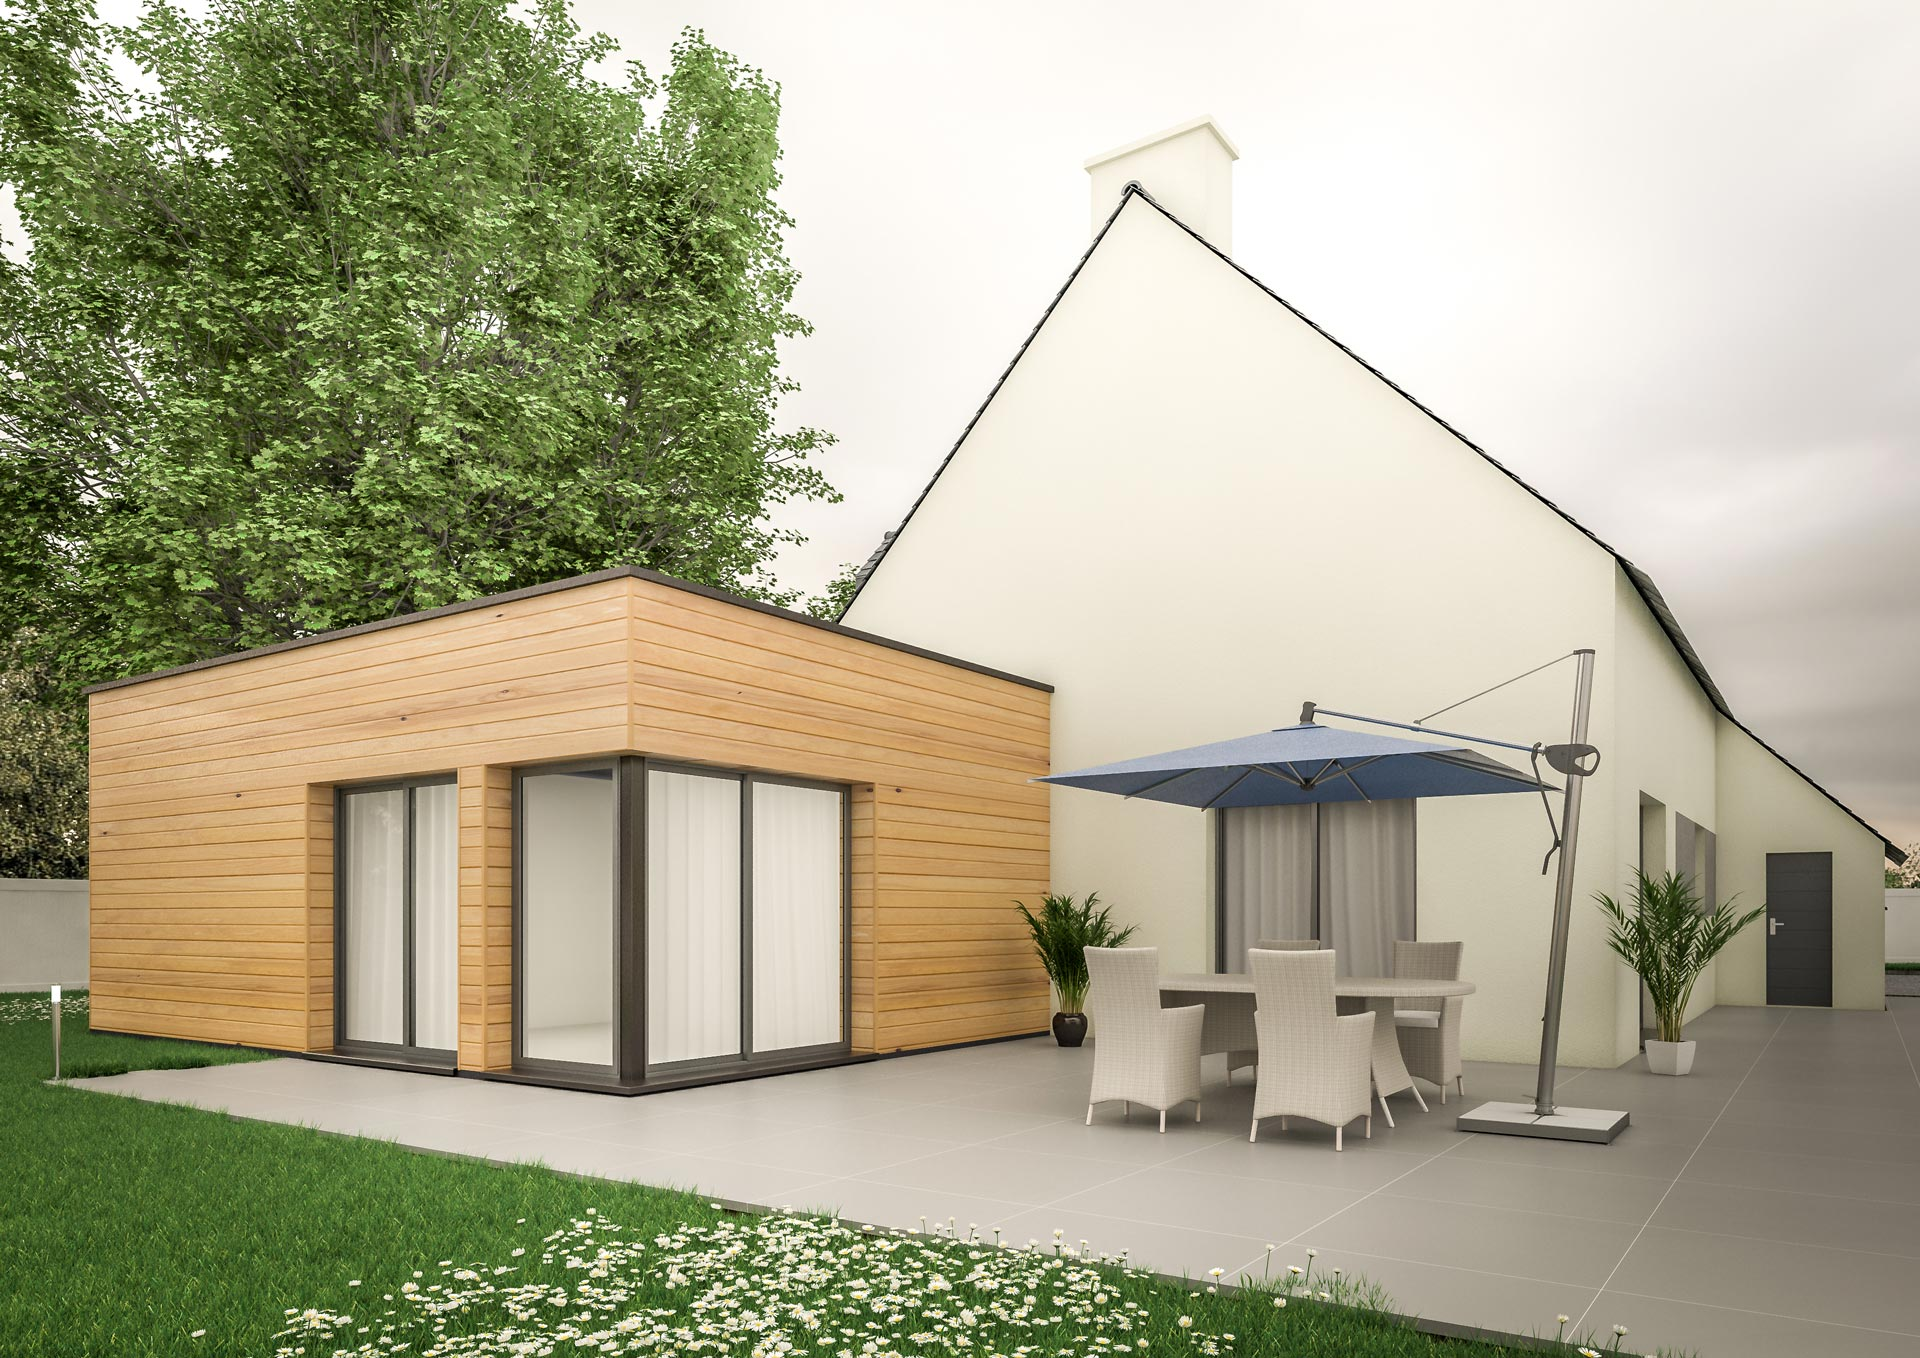 Extension Maison Cube Moderne Faade By Moon Design Build Extension Sur Jardin Avec Toiture